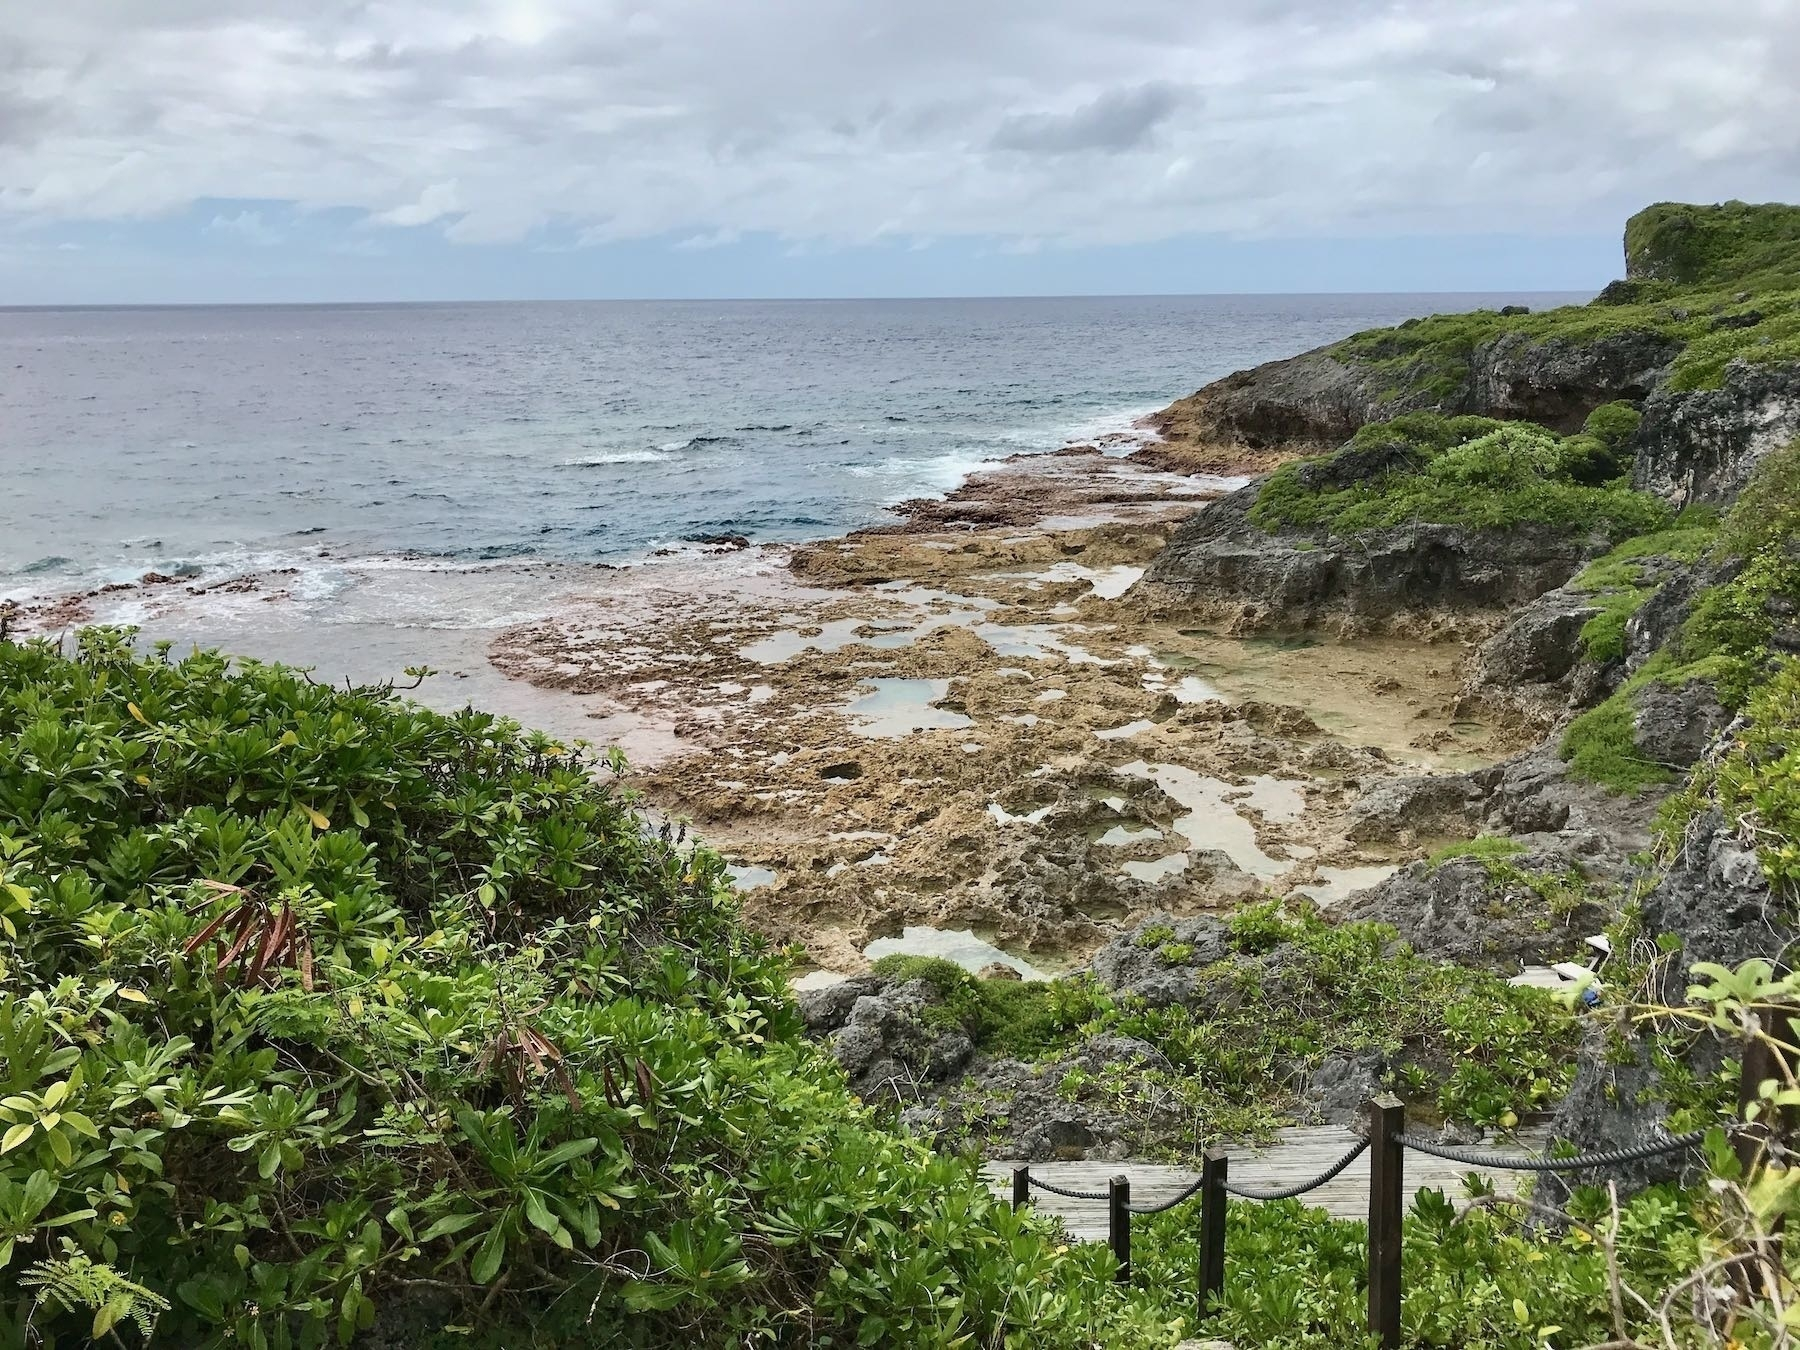 Sea, rocky reef, steps down and green vegetation.